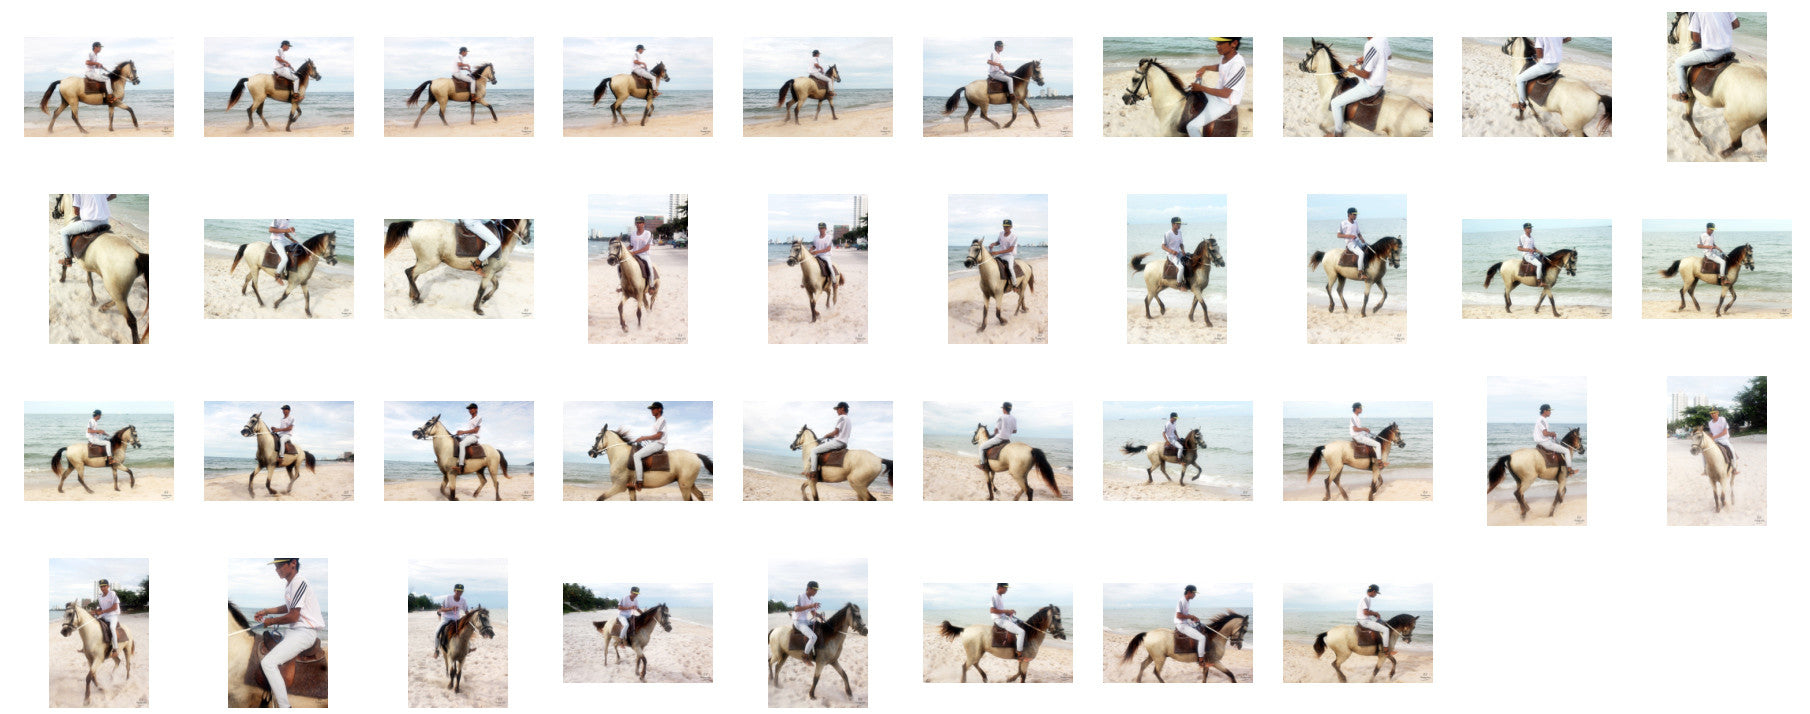 Thaksin in Jodhpurs Riding with Saddle on Buckskin Horse, Part 7 - Riding.Vision